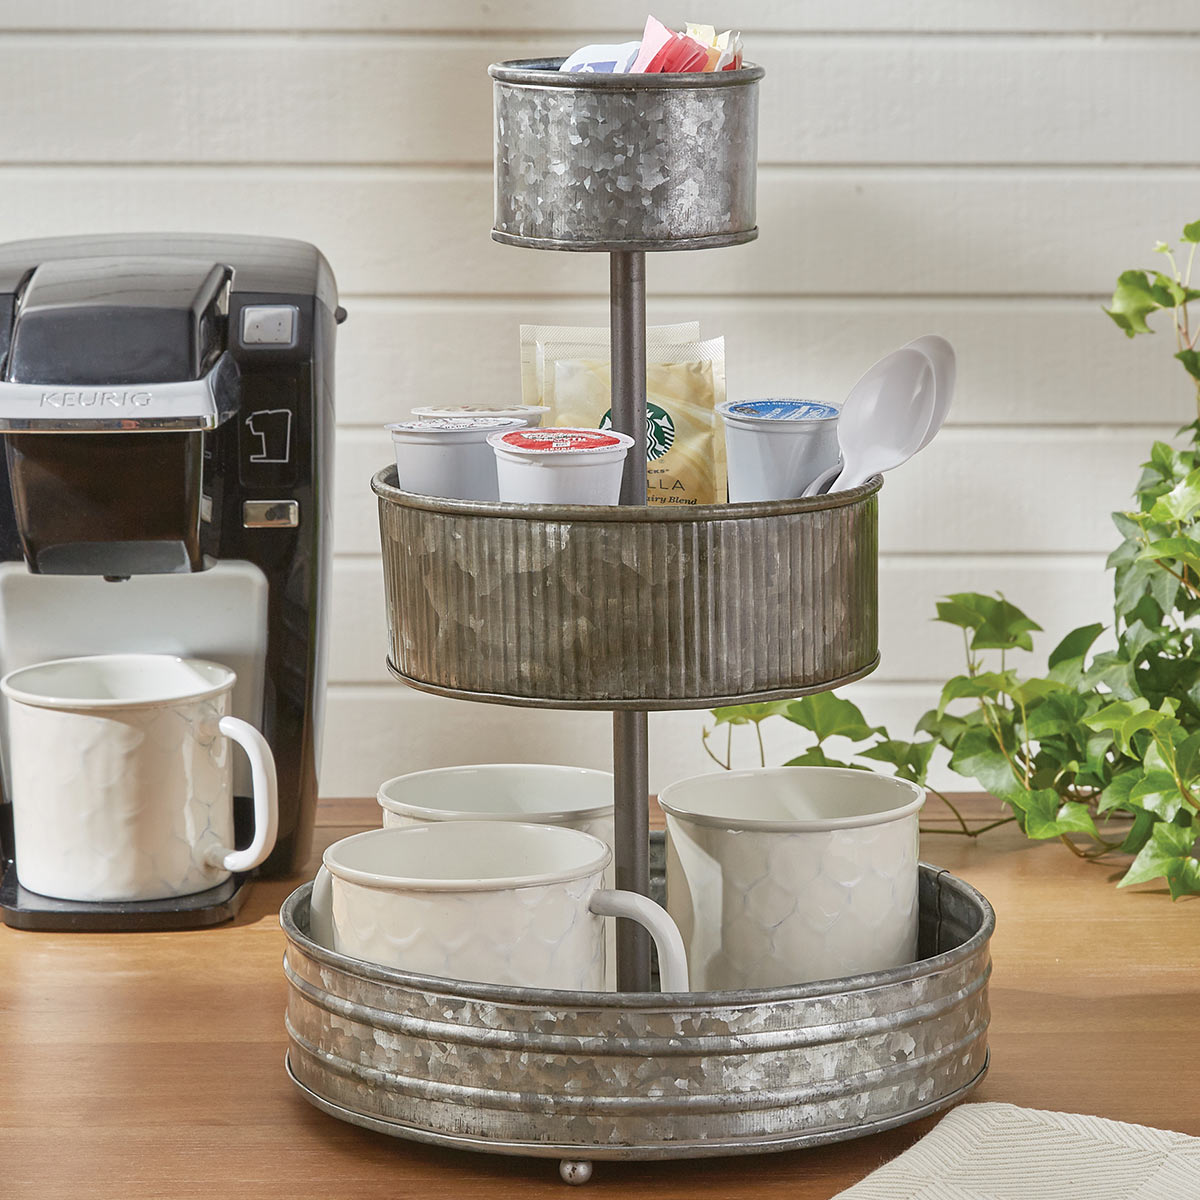 Galvanized Iron 3 Tier Organizer